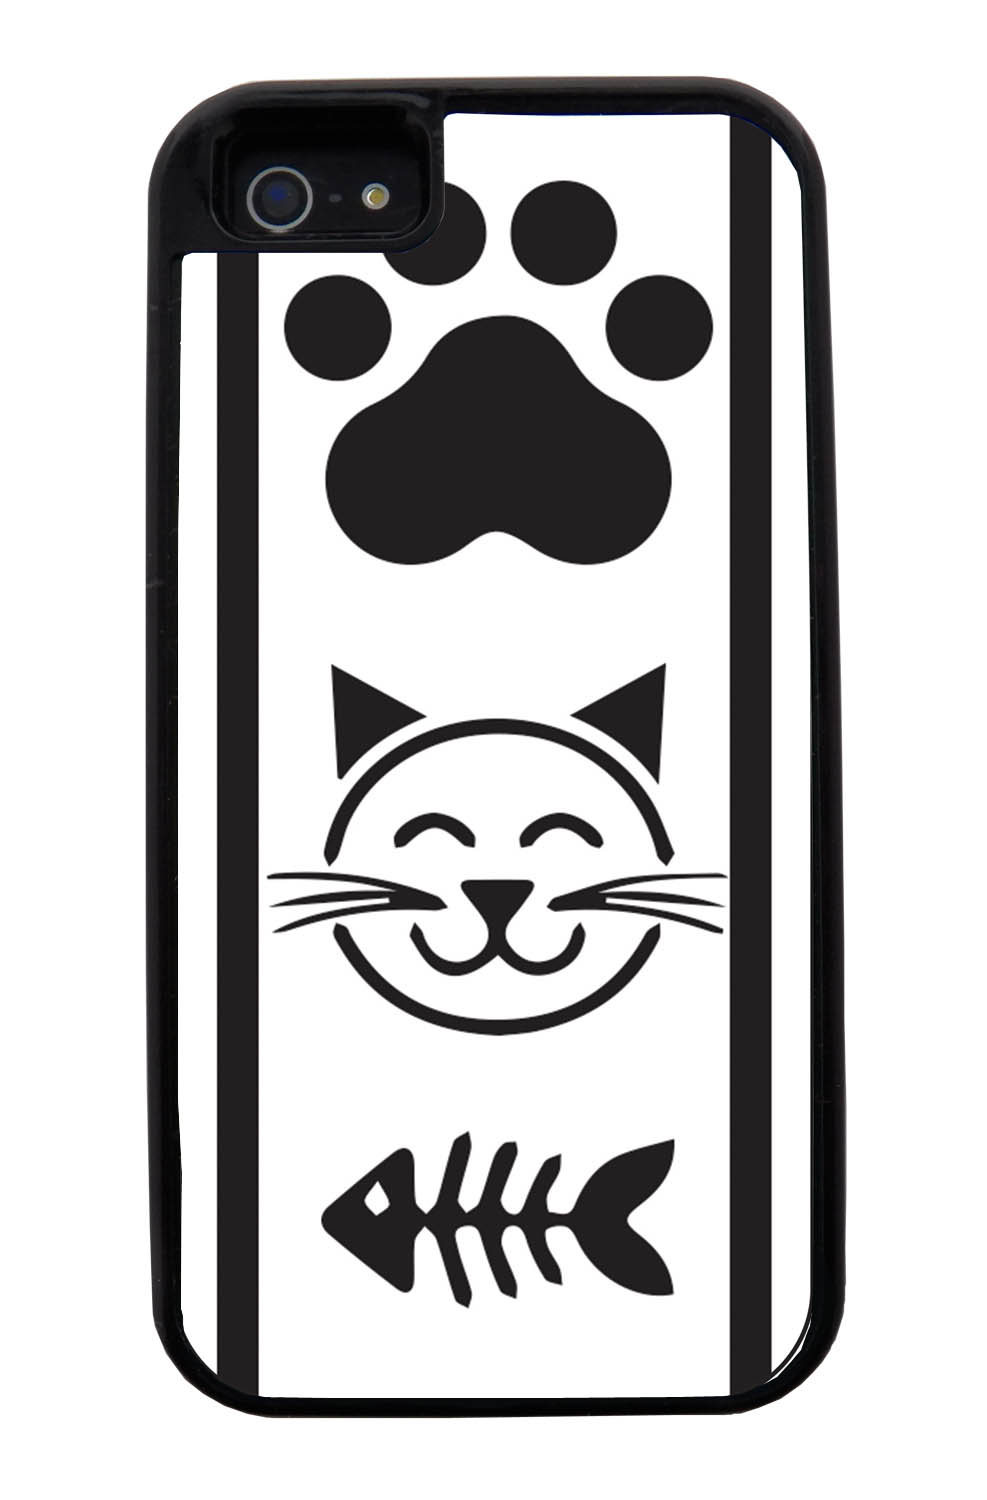 Apple iPhone 5 / 5S Cat Case - Black Cat Icons on White - Simple Stencils Cutout - Black Tough Hybrid Case